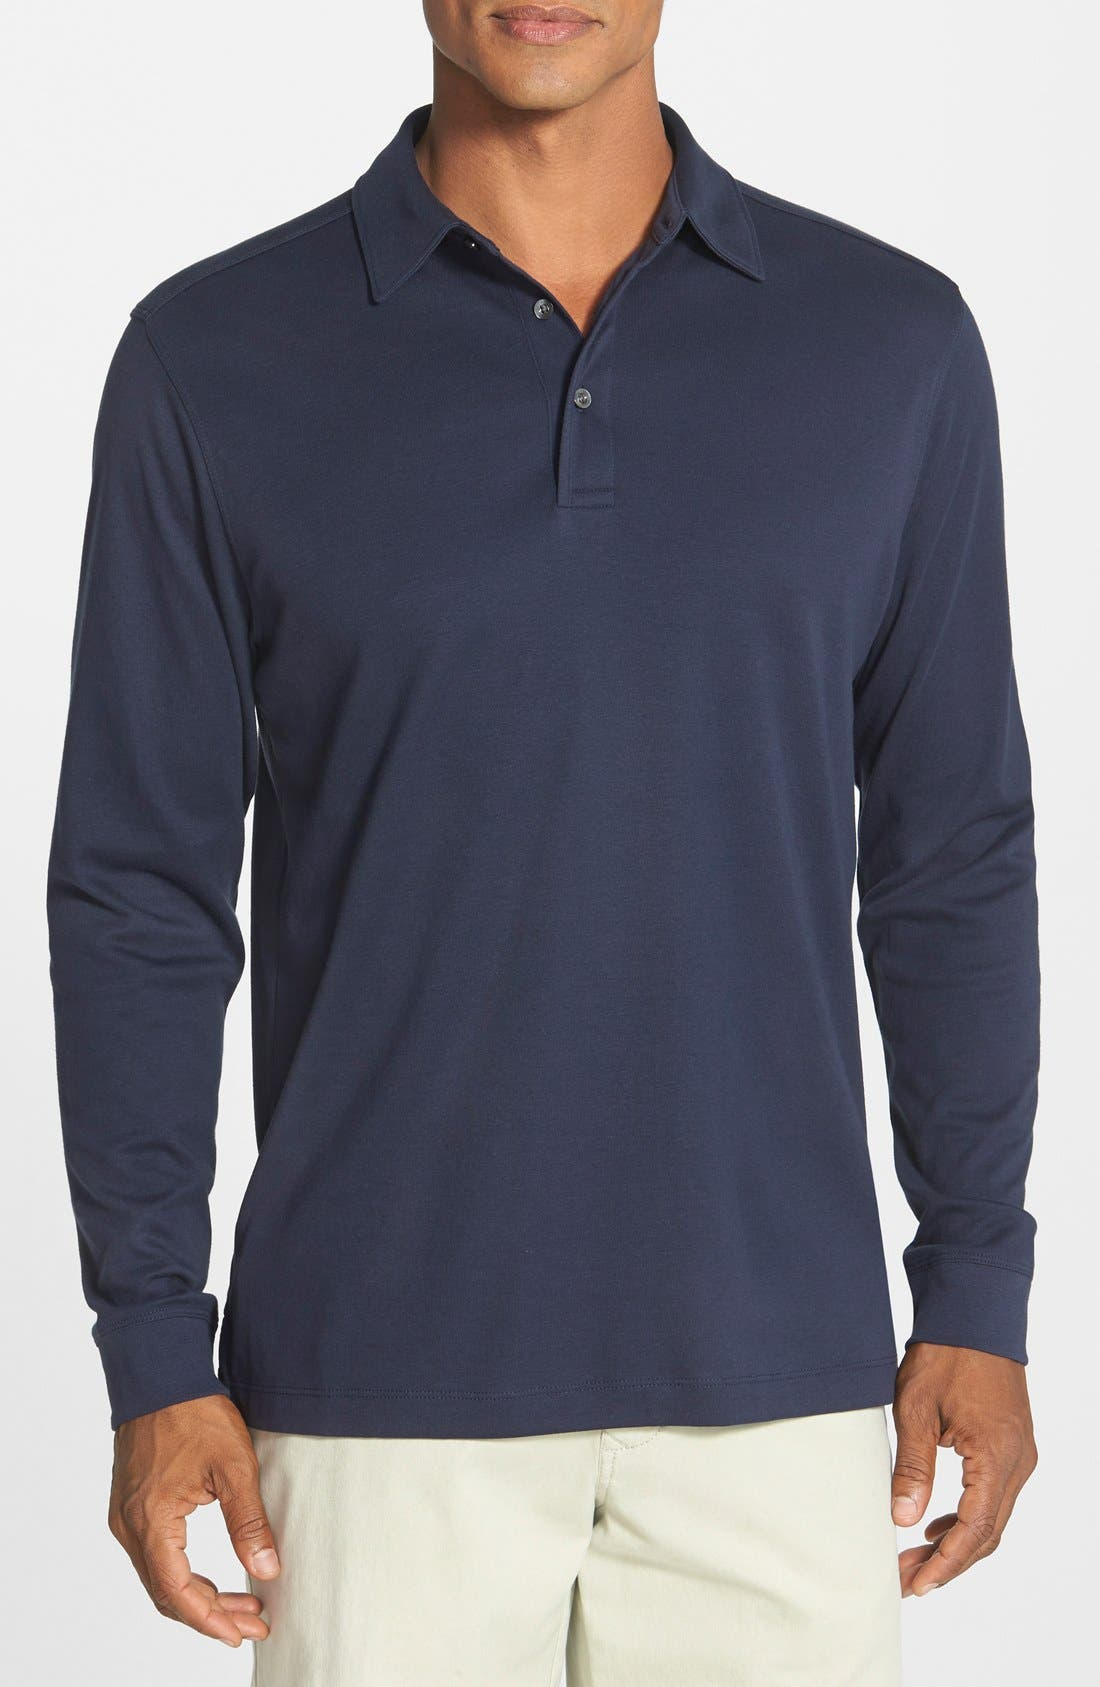 Cutter & Buck 'Belfair' Pima Cotton Polo (Online Only)